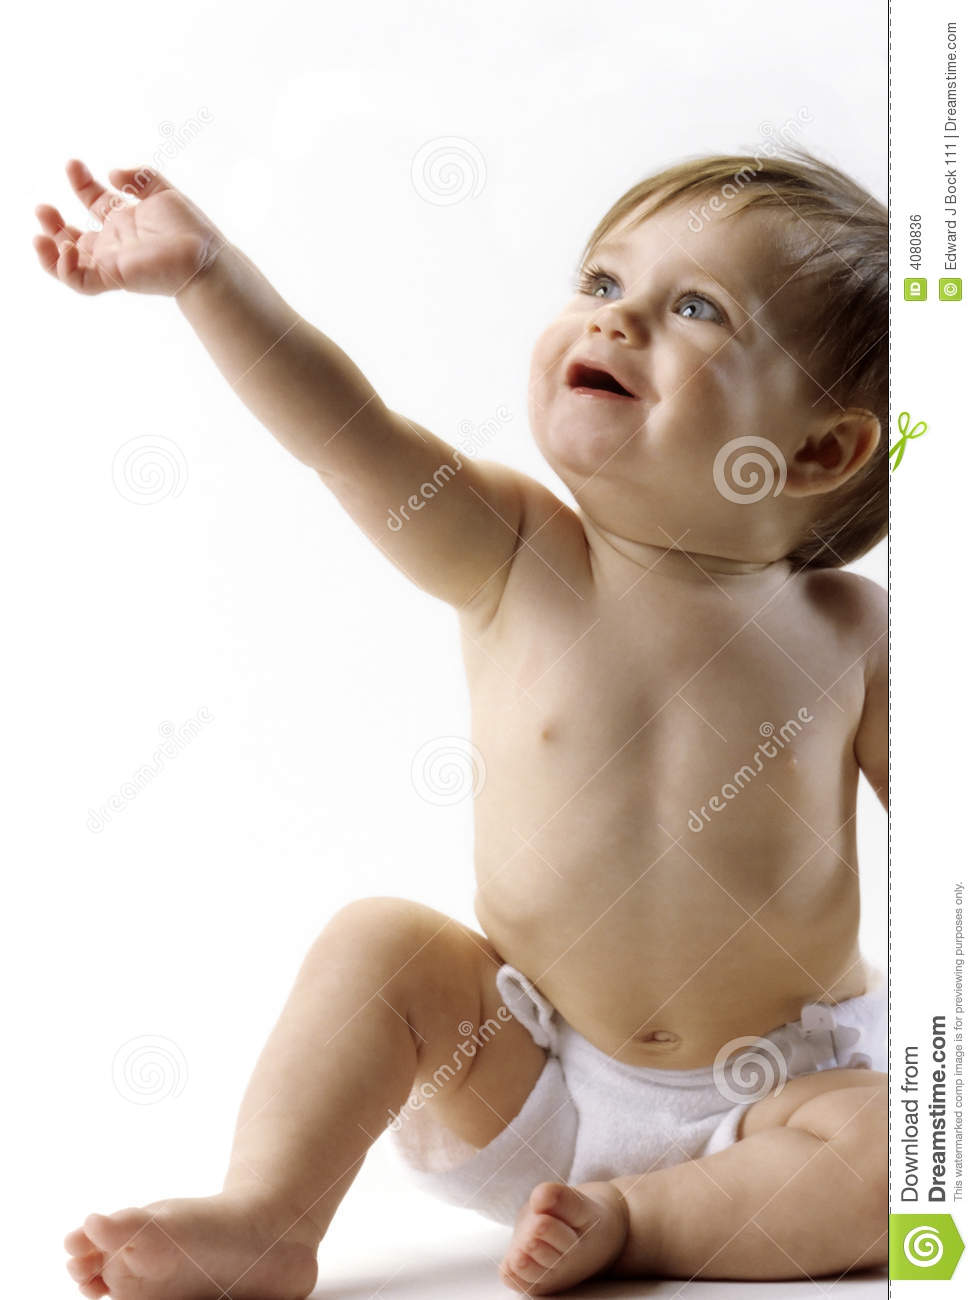 baby reaching up royalty free stock image image 4080836 Free Diapers Clip cloth diaper clipart free